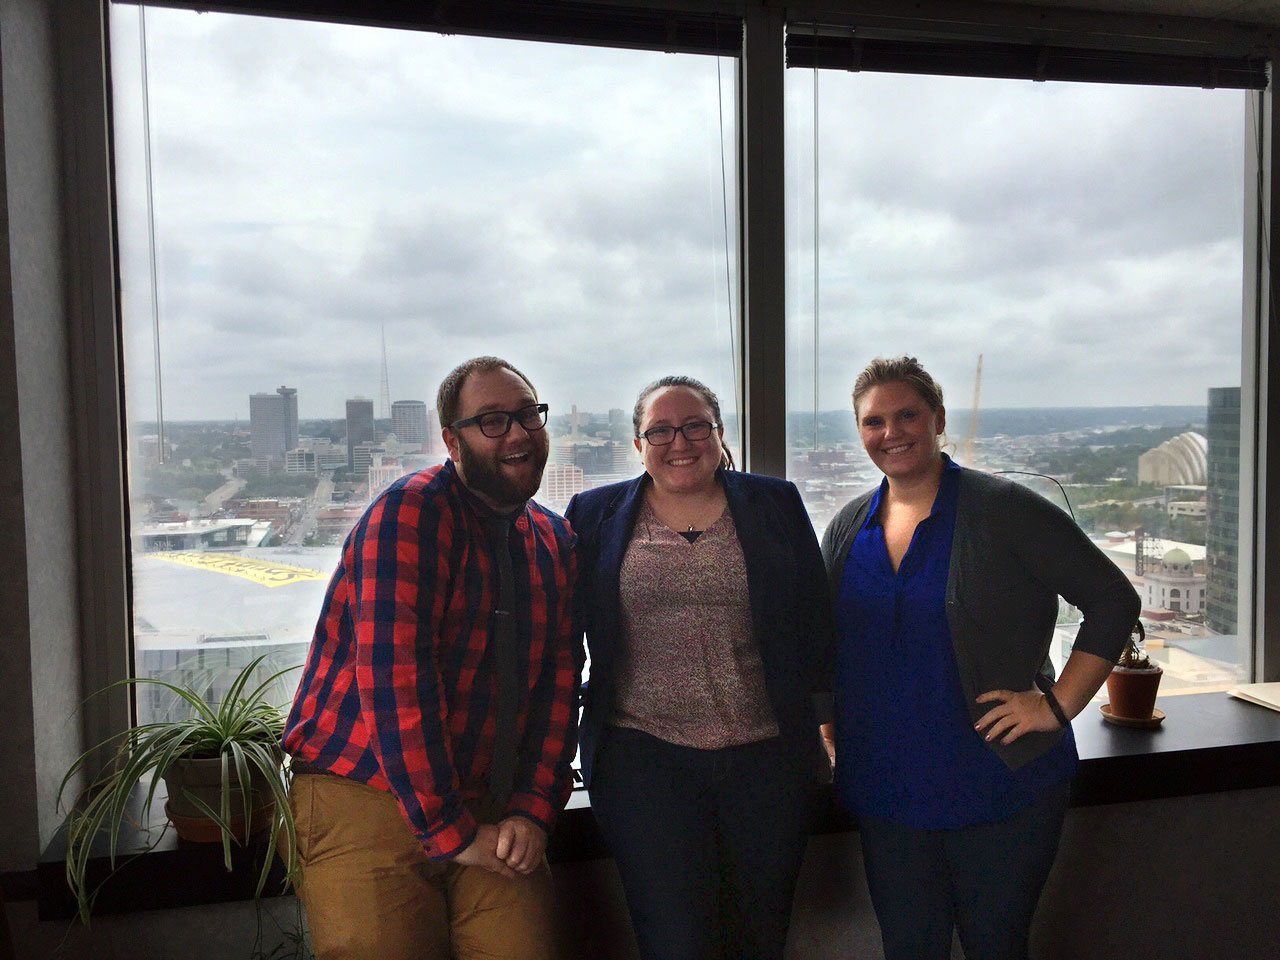 KU Law students Travis Freeman, Libby Snyder and Cori Viola are spending the summer as interns at Legal Aid of Western Missouri. Also an intern, not pictured, is Maggie Turek.